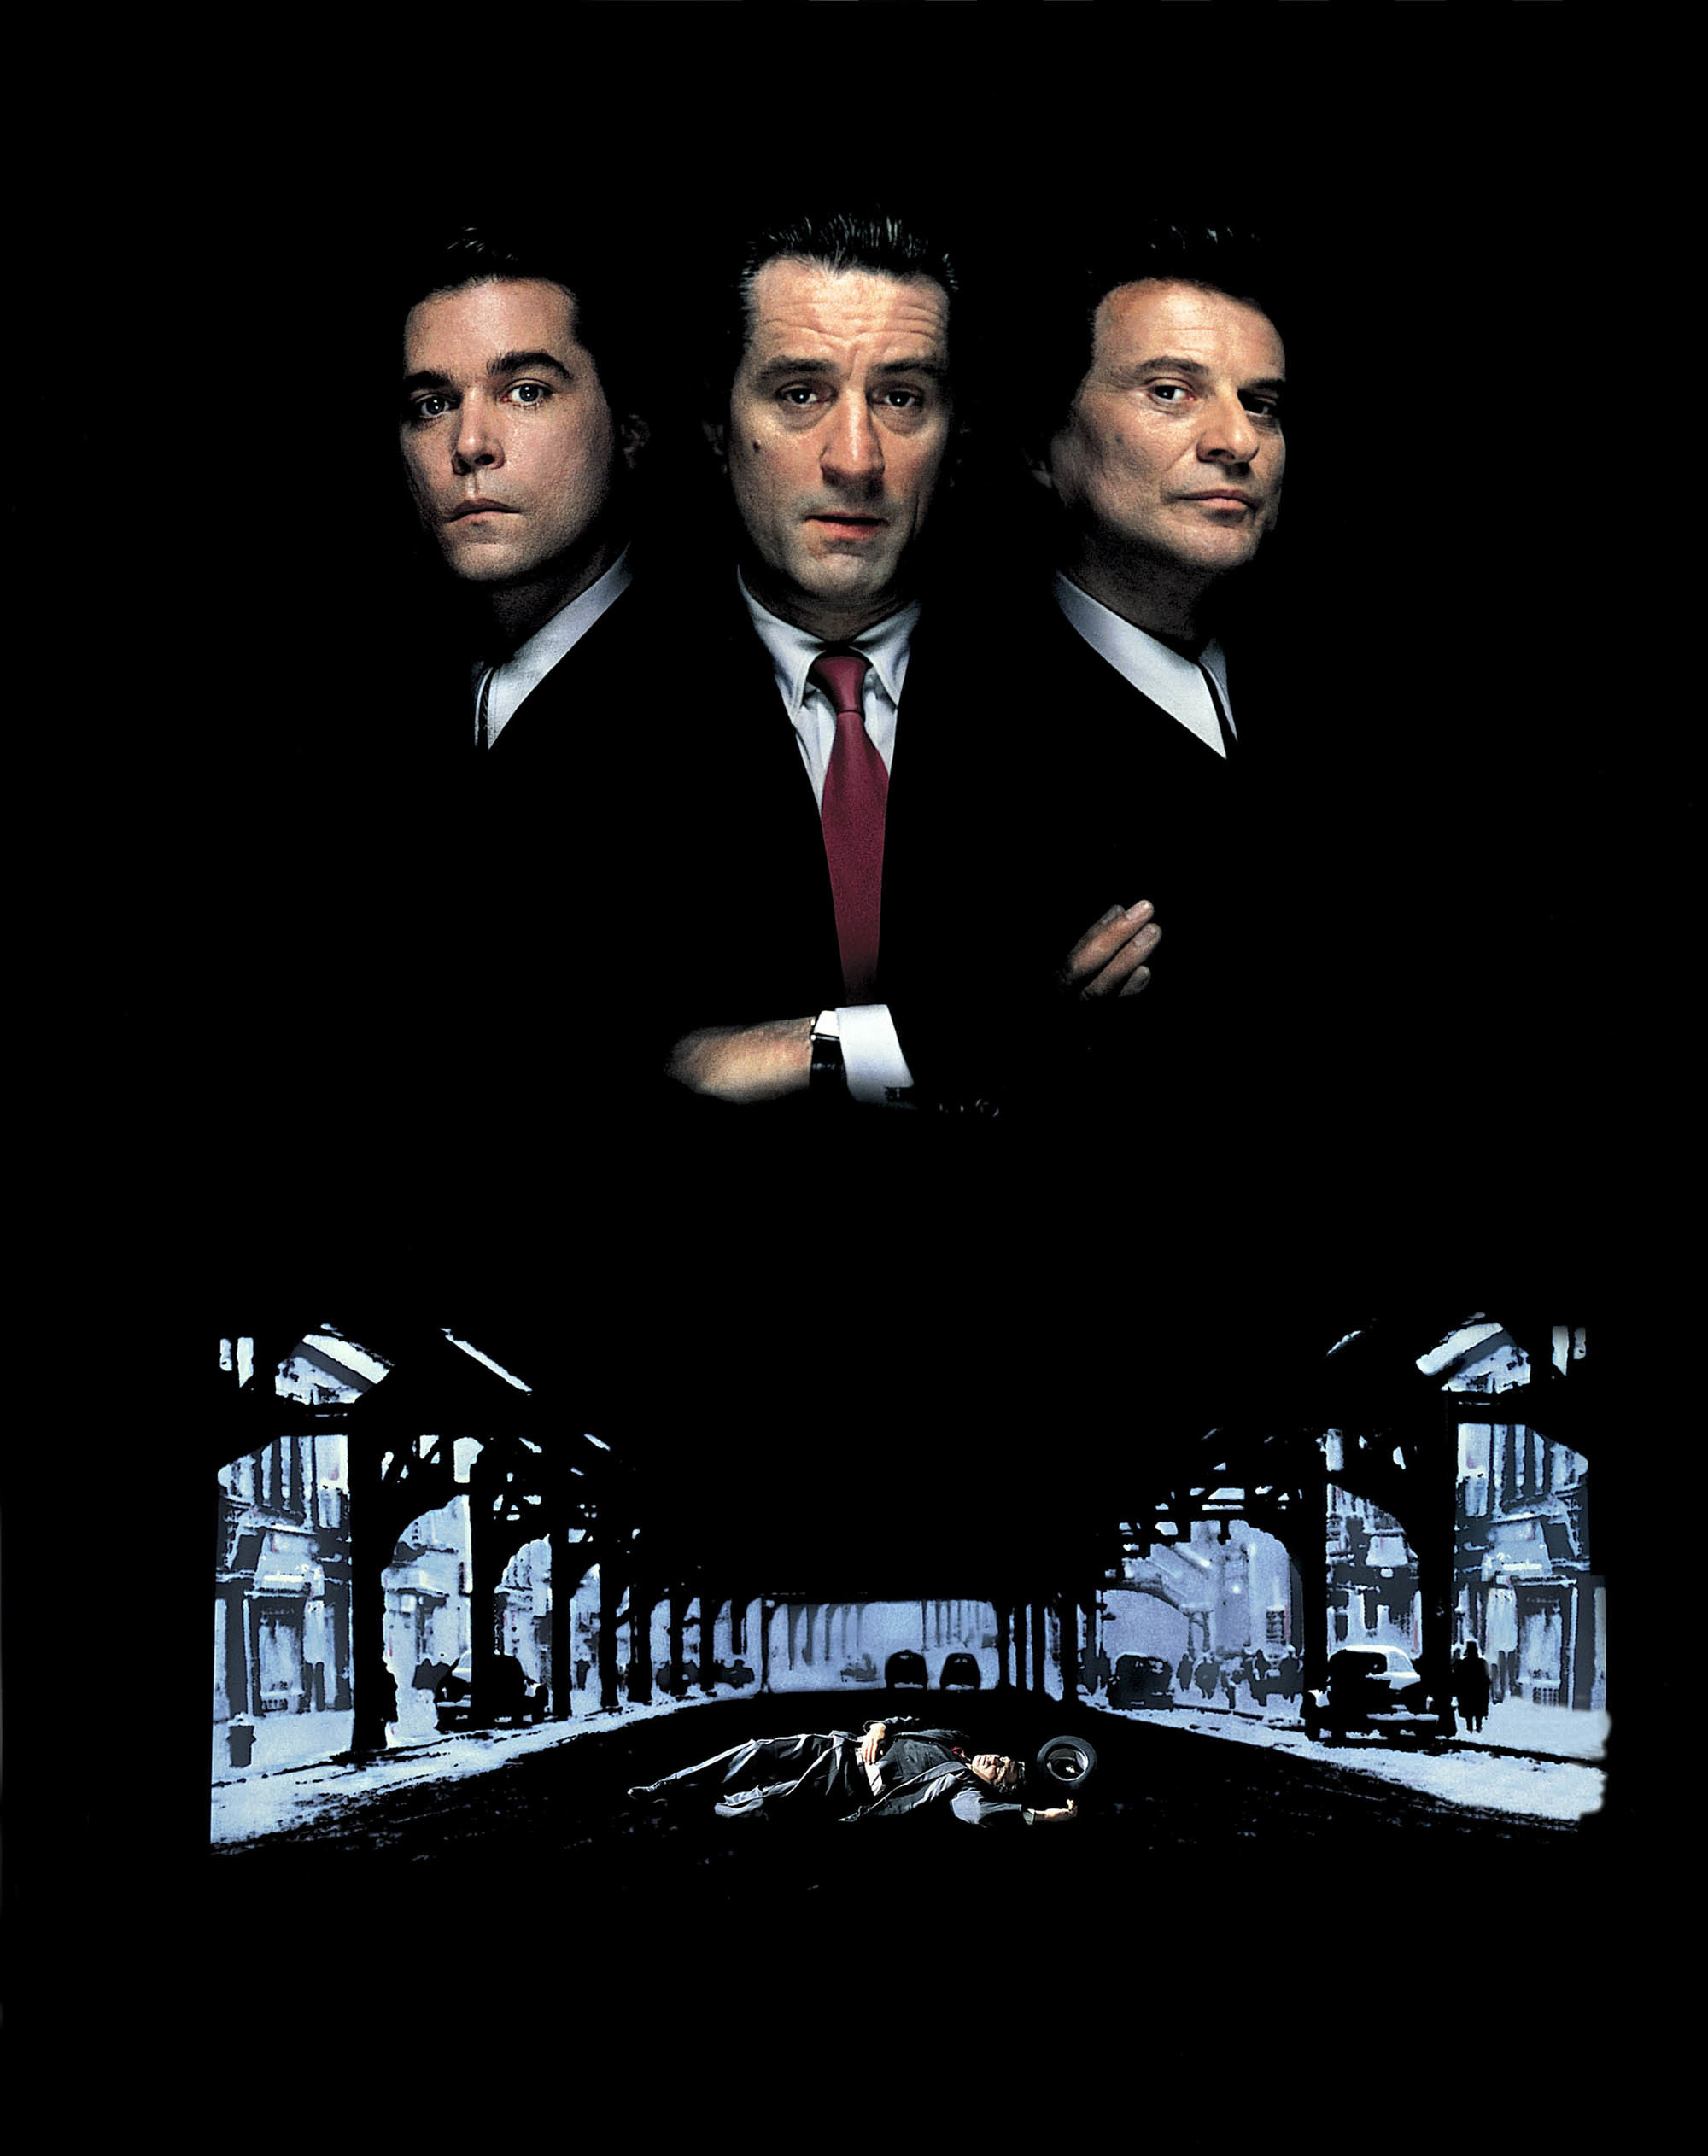 Movies Goodfellas Robert De HD Wallpaper